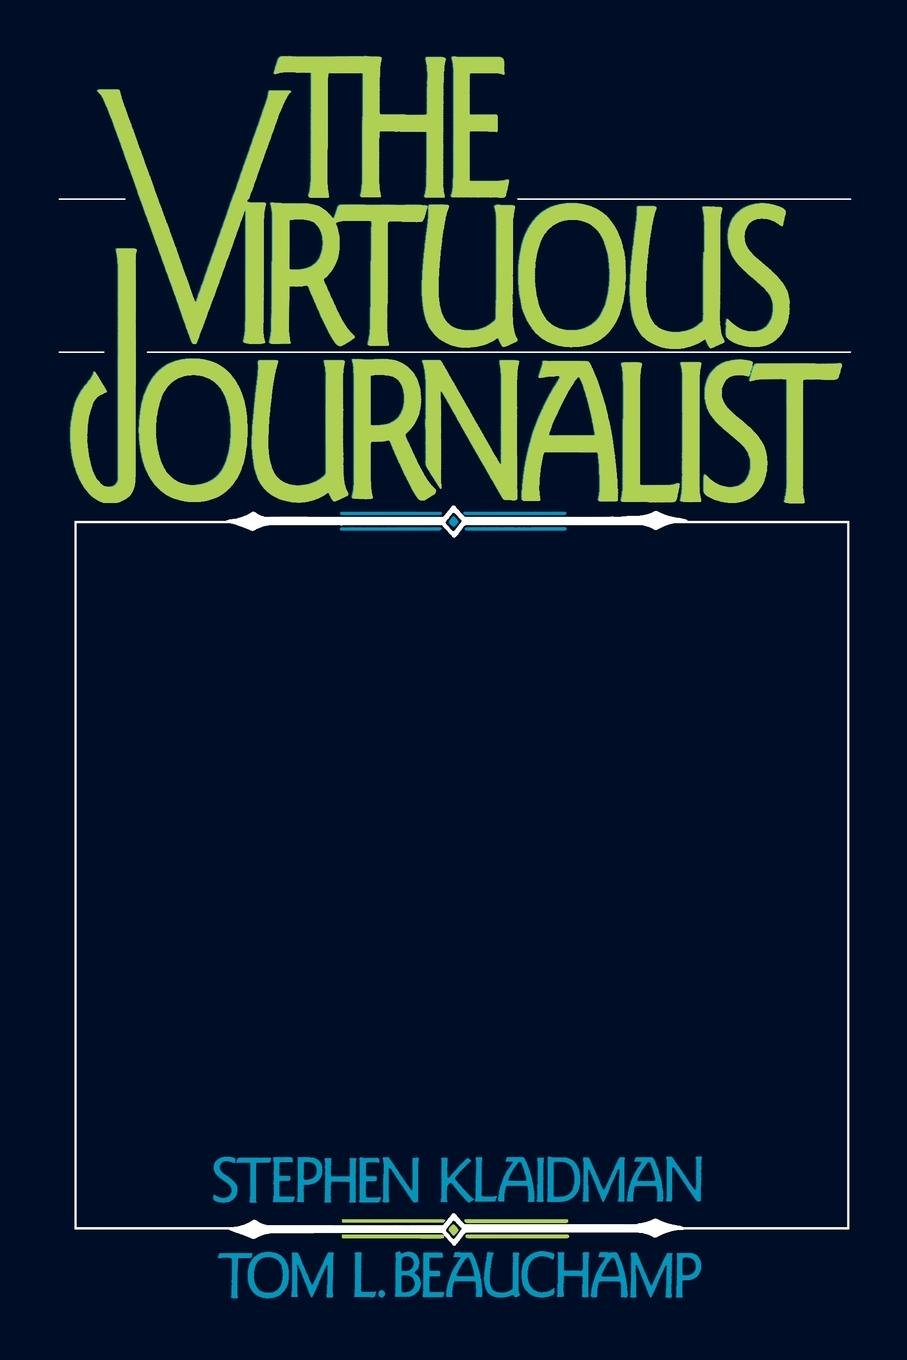 The Virtuous Journalist by Oxford University Press